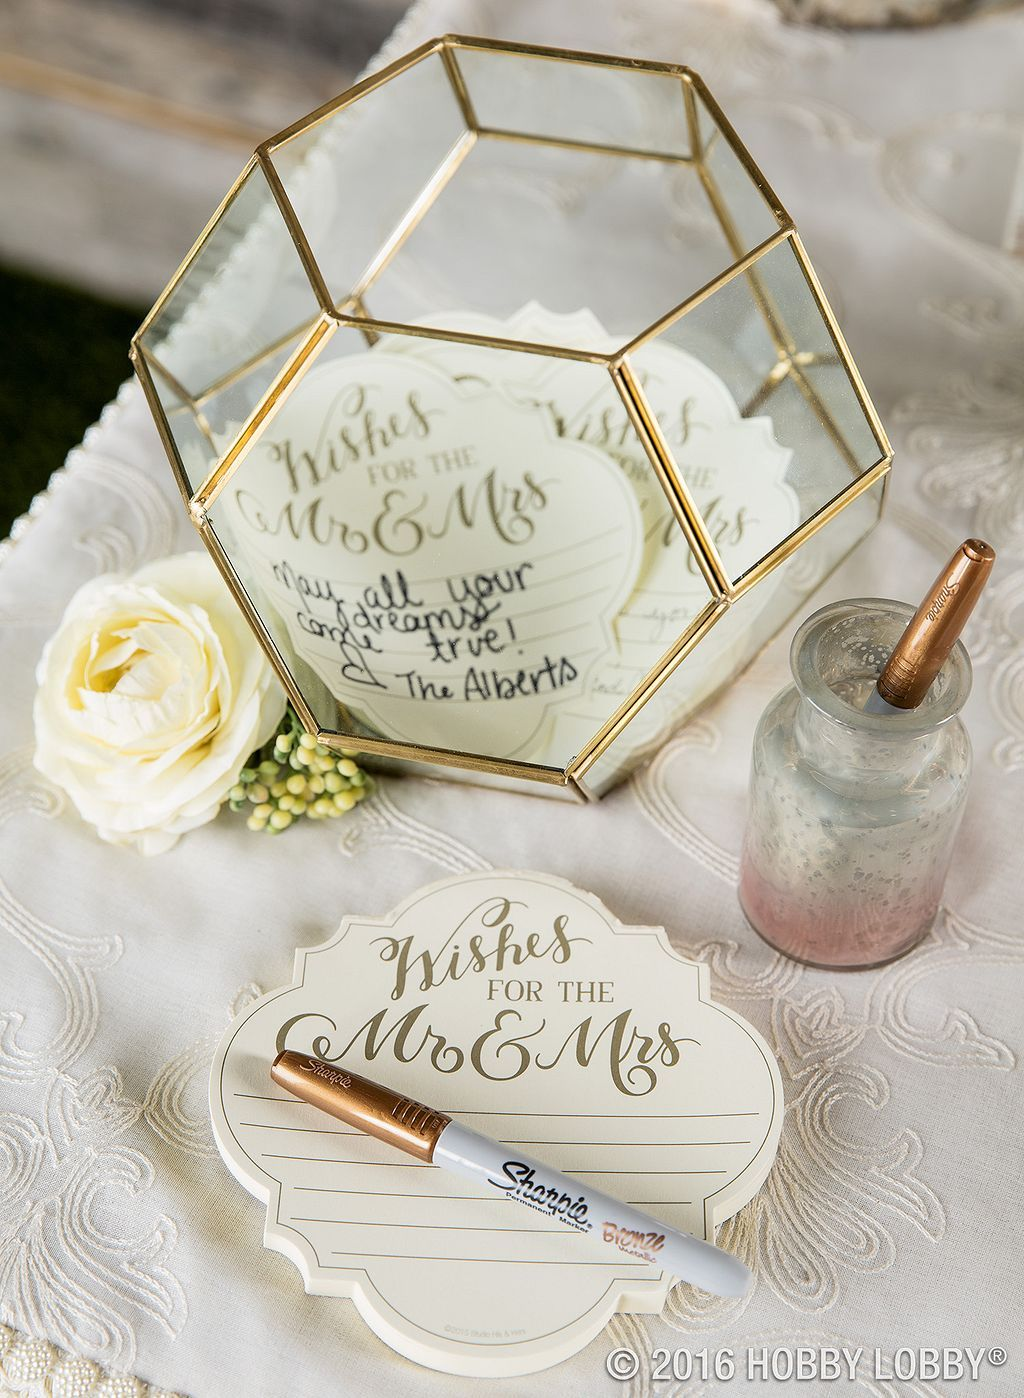 40 wedding guestbook ideas 11 | Unique weddings, Guestbook ideas and ...